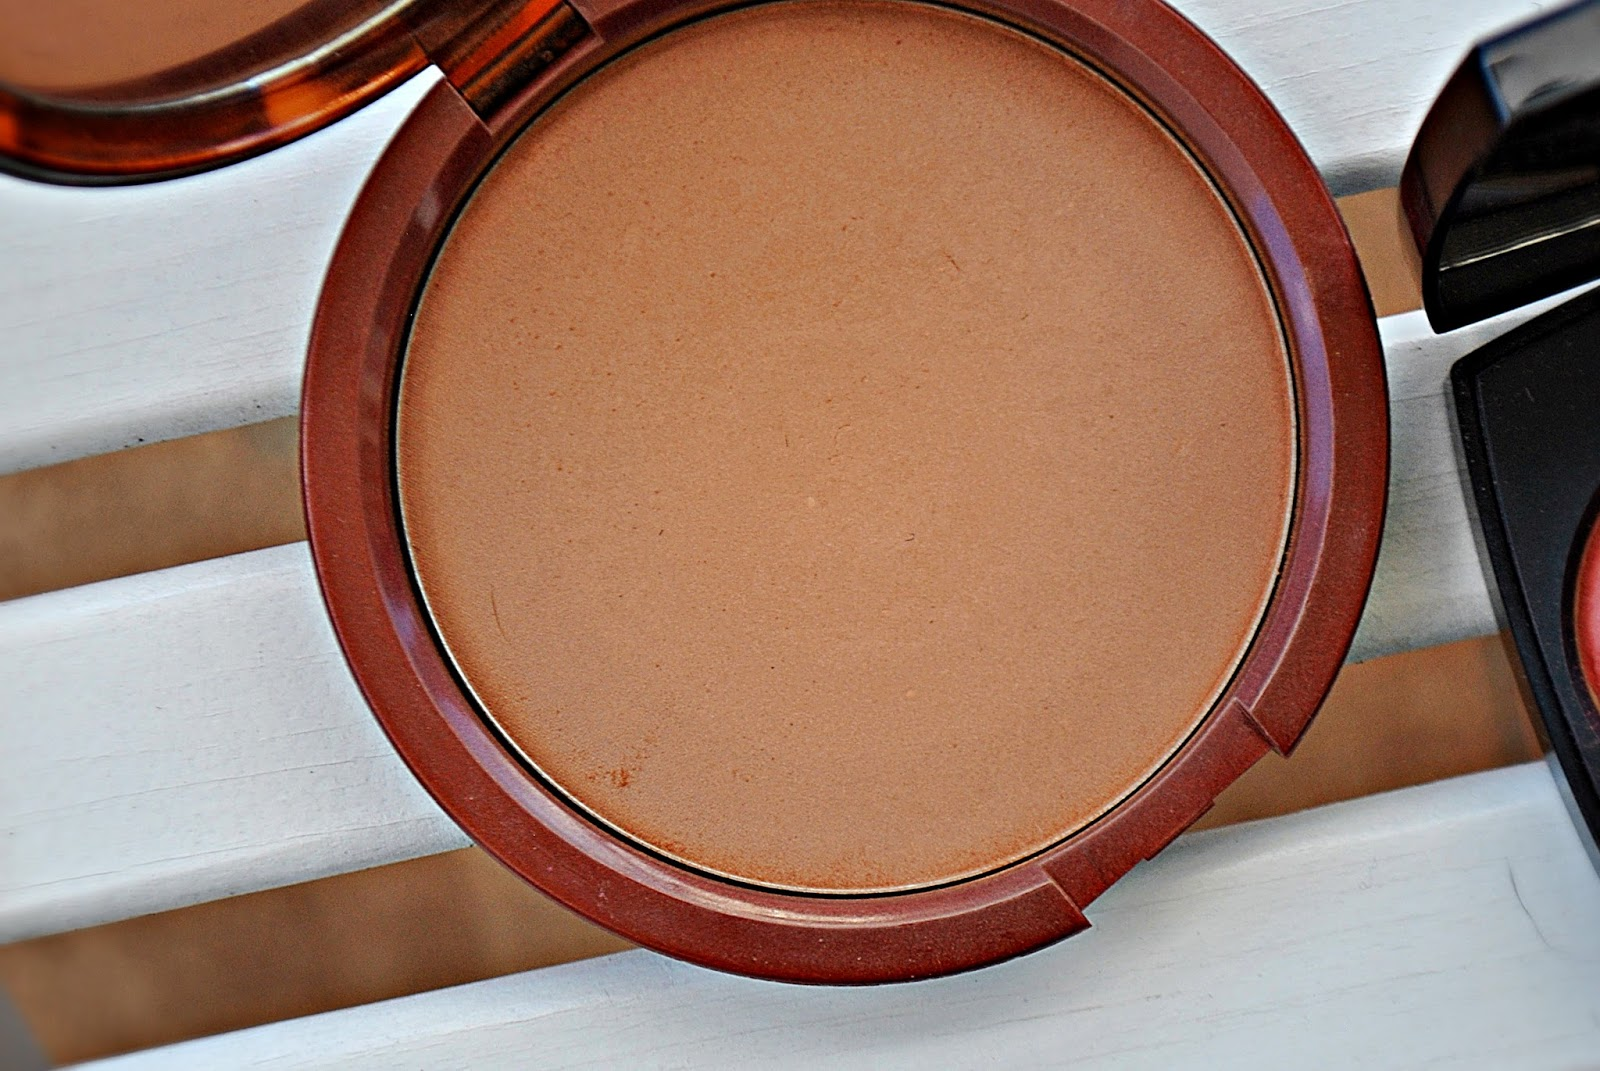 Estee Lauder - Bronze Goddess Powder Bronzer - 03 Medium deep